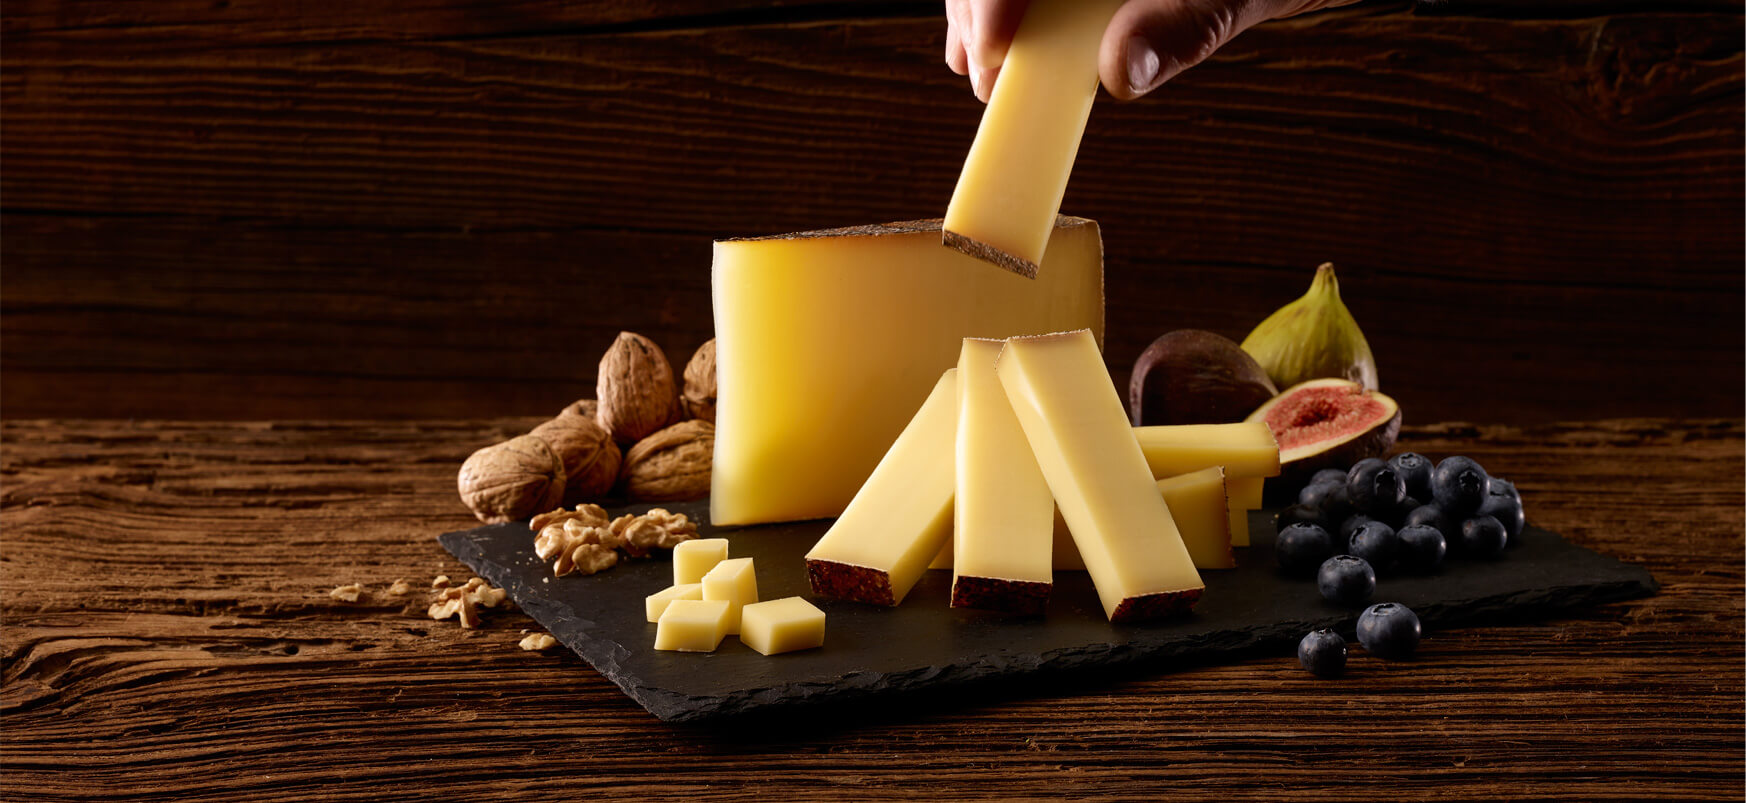 A delicious Swiss cheese<br /> made from raw milk.<br /> Carefully prepared by an artisan cheese-maker.<br /> Melts in the mouth and is naturally rich in Omega-3s.